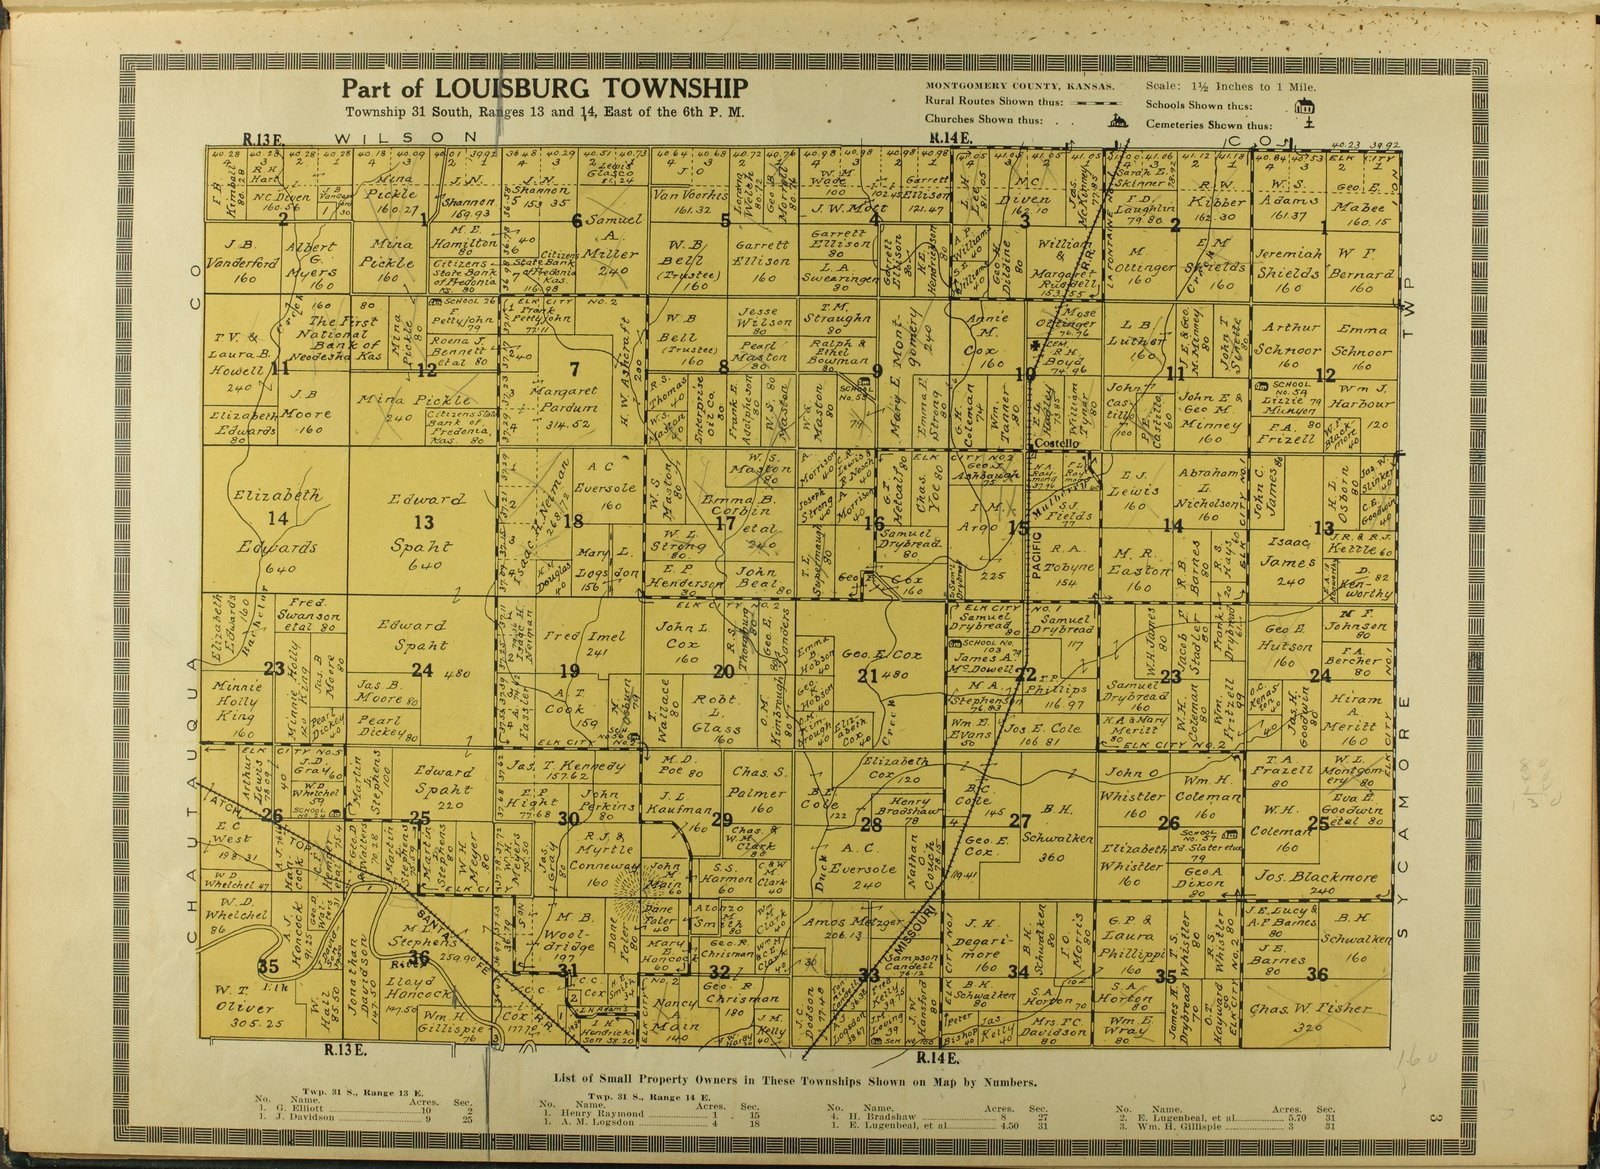 Atlas and plat book of Montgomery County, Kansas - 3